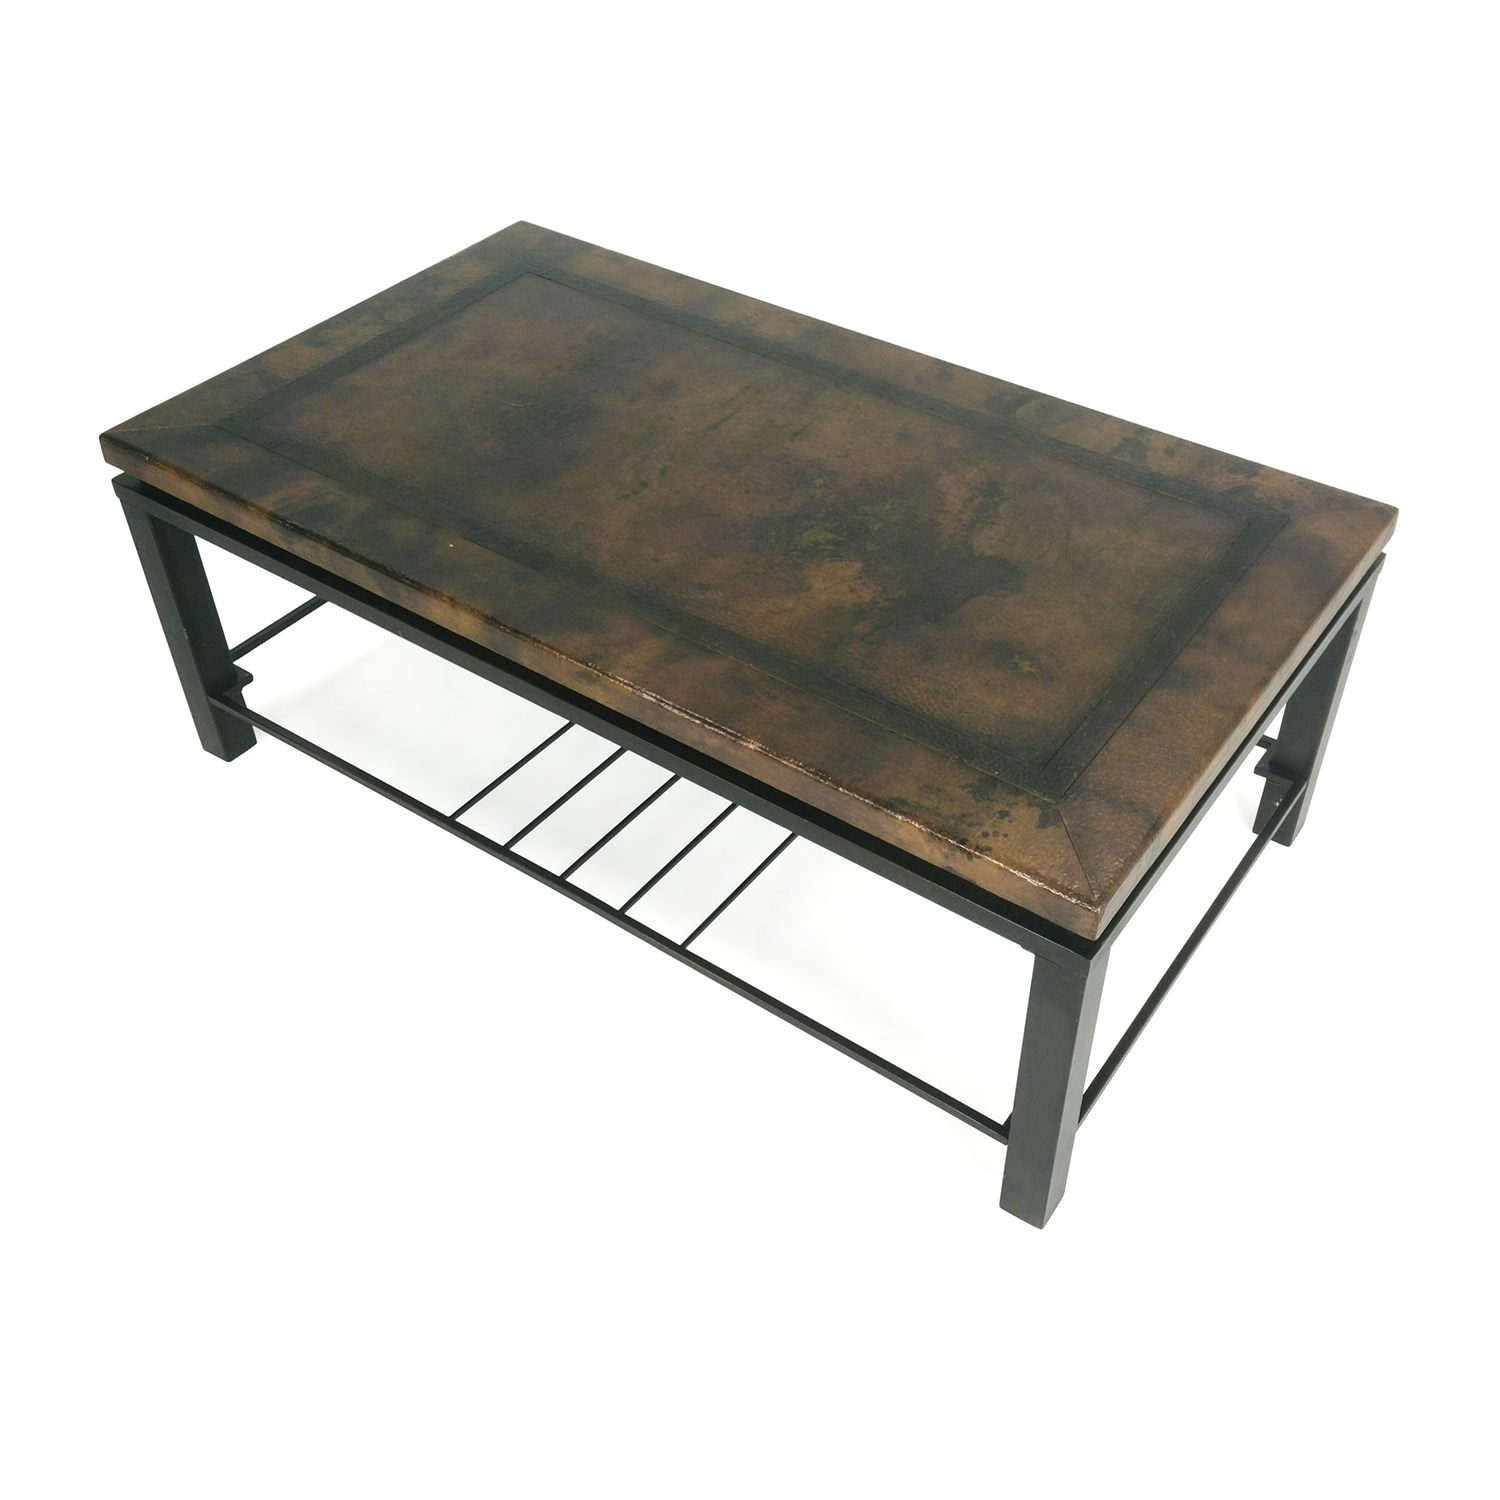 Bronze Coffee Table Nz: Unknown Brand Bronze Coffee Table / Tables